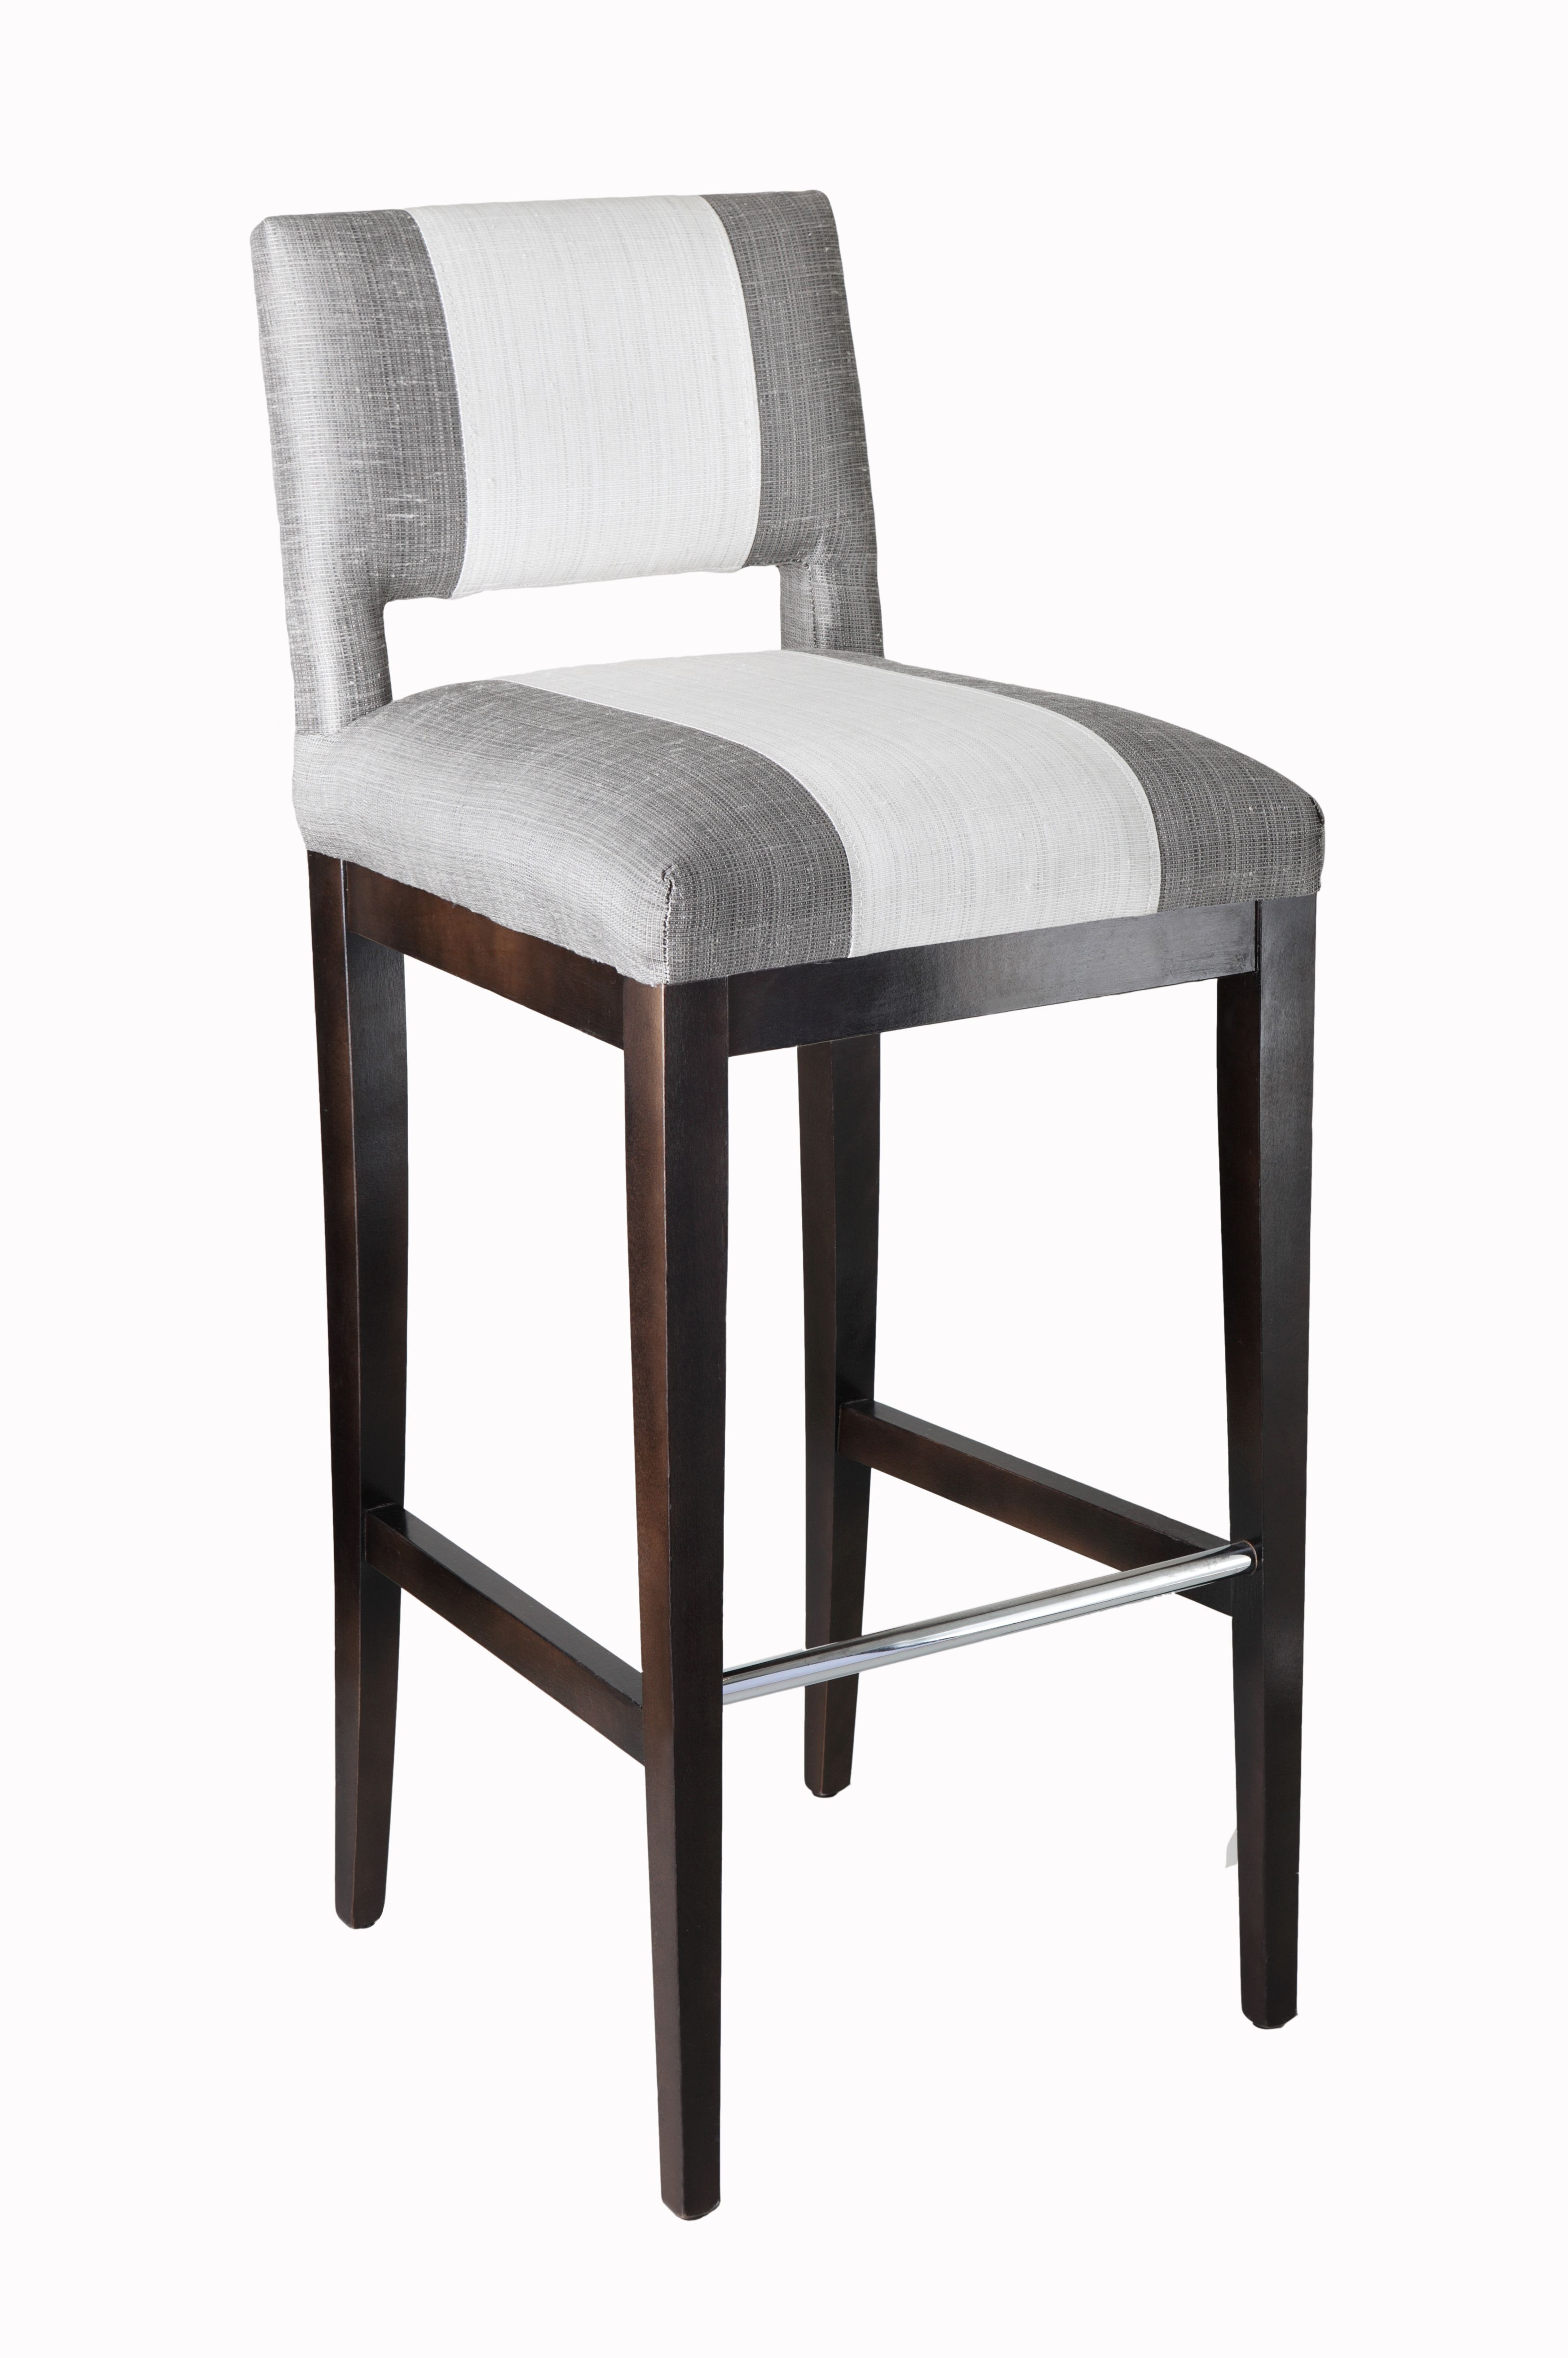 Pin by SBell on FURNITURE LIKES Pinterest